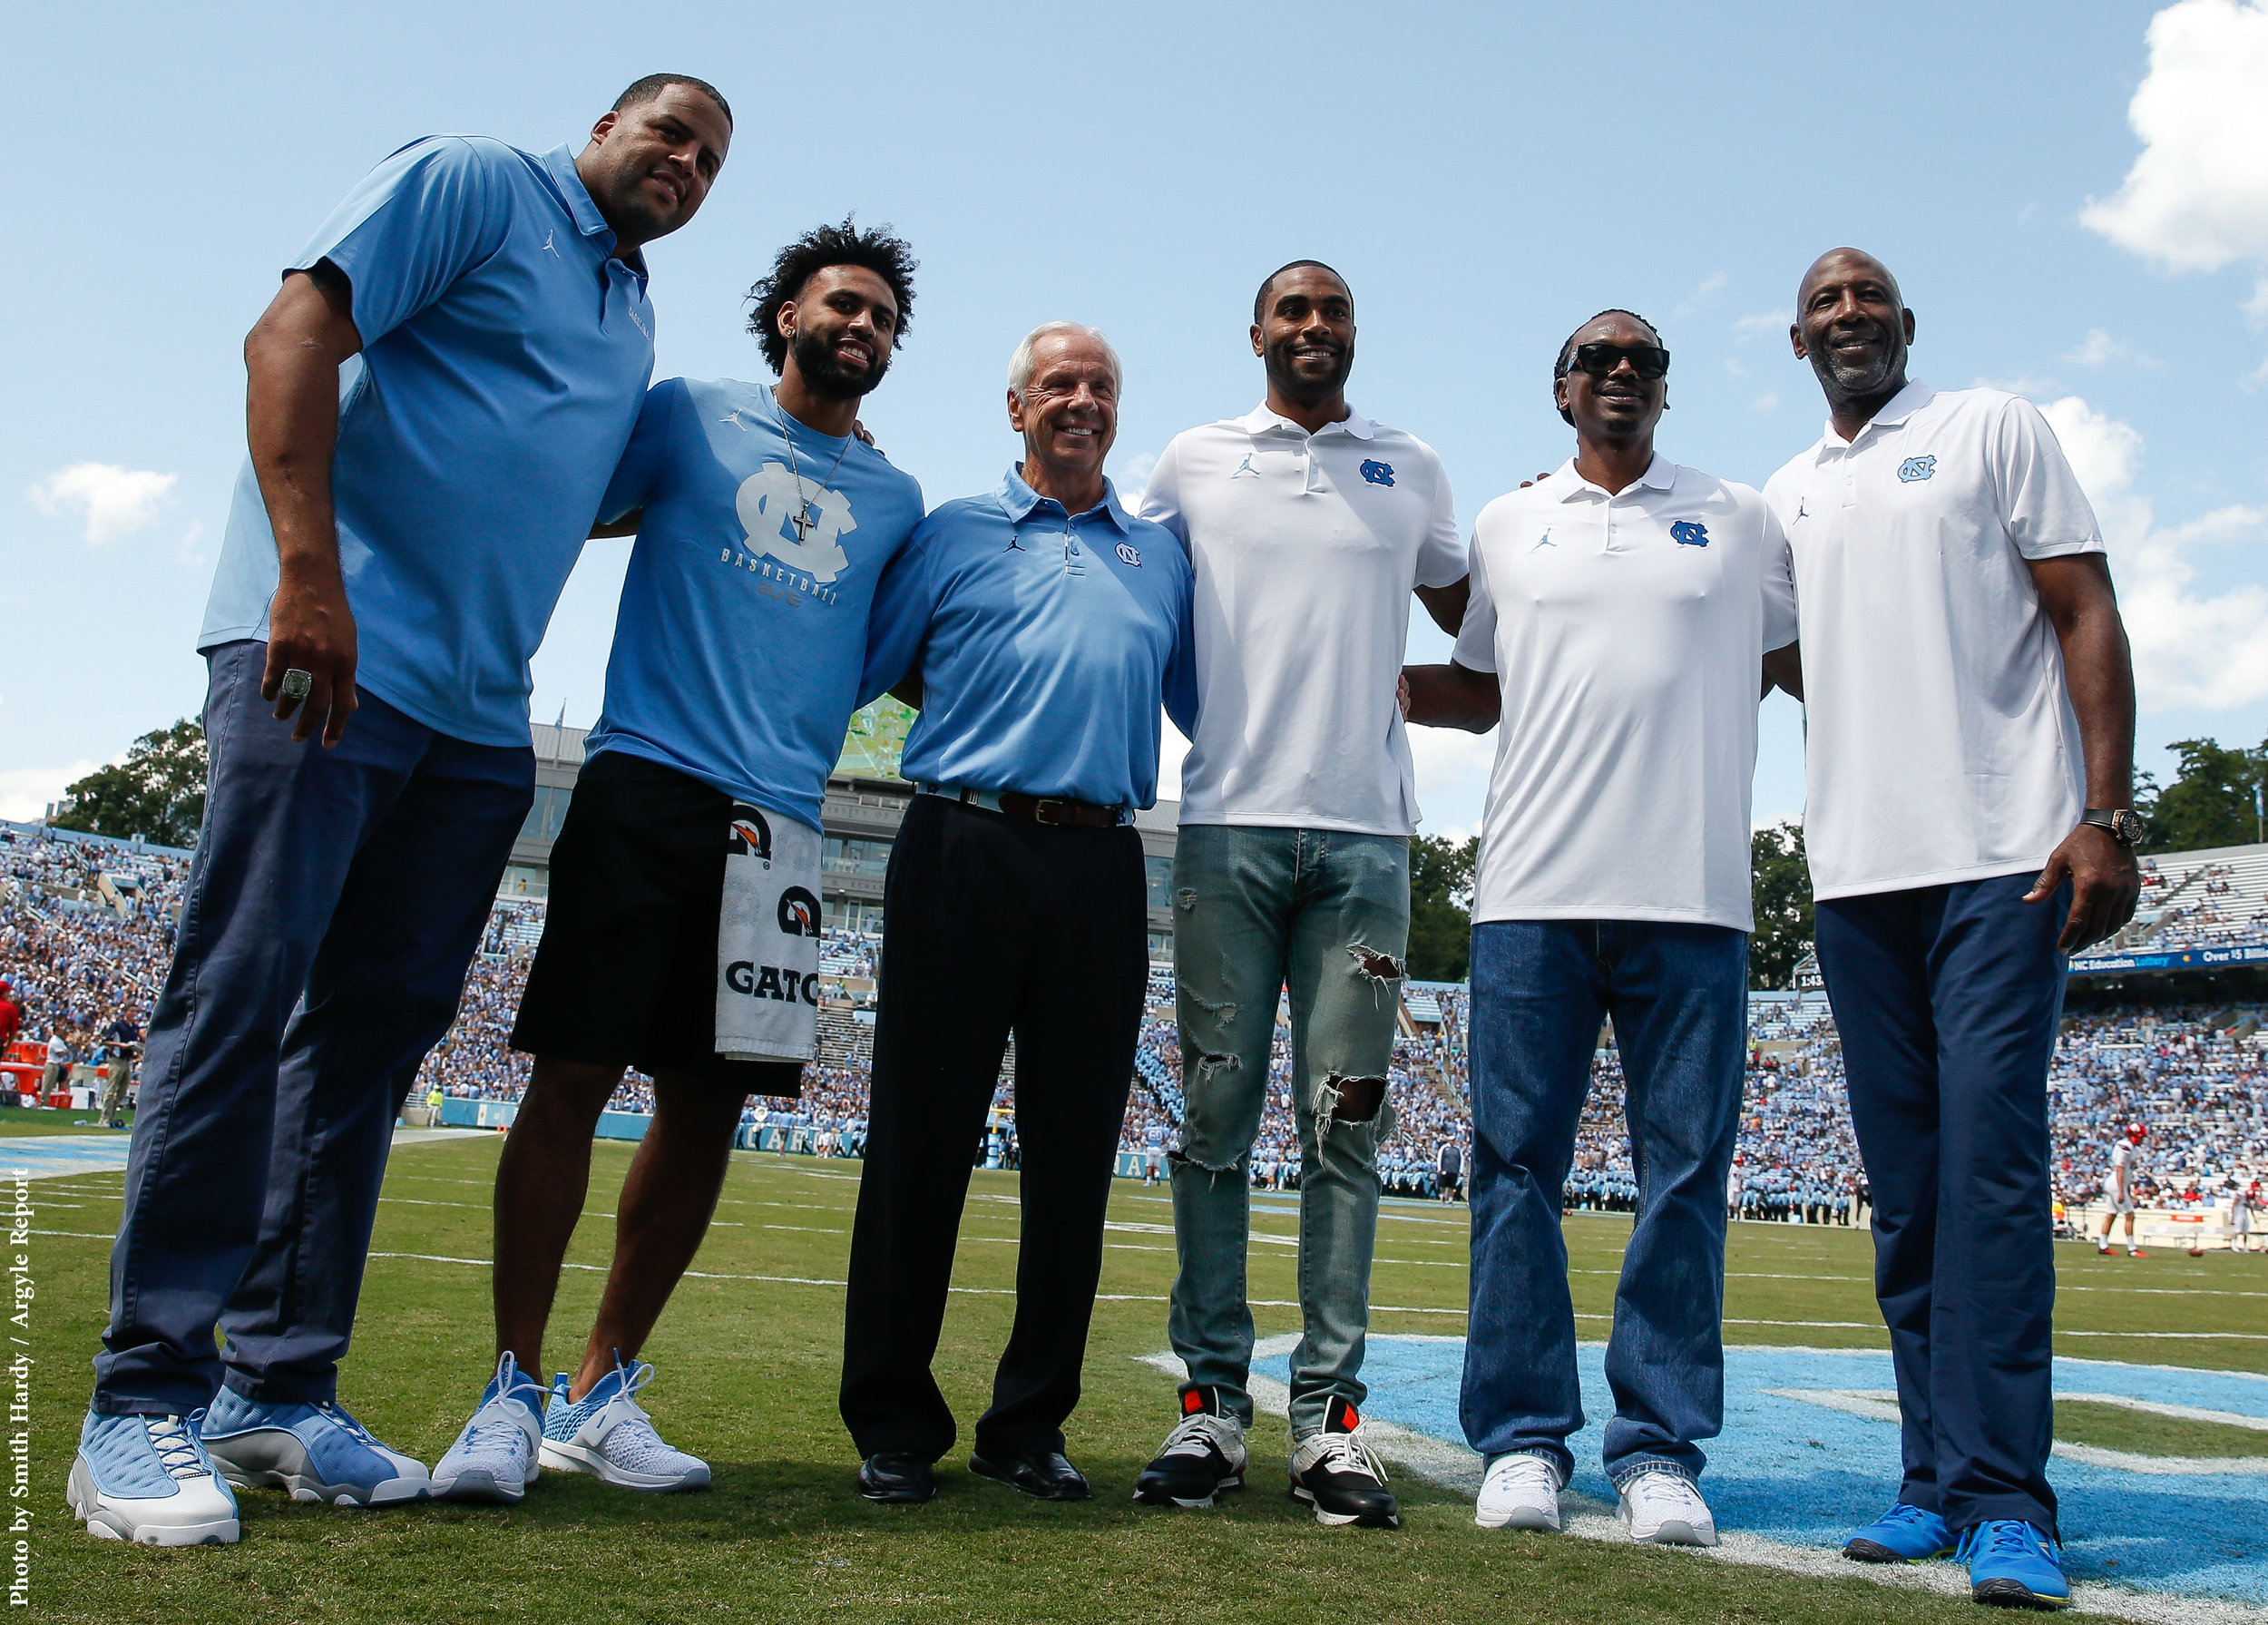 Sean May, Joel Berry, Roy Williams, Wayne Ellington, Donald Williams, James Worthy